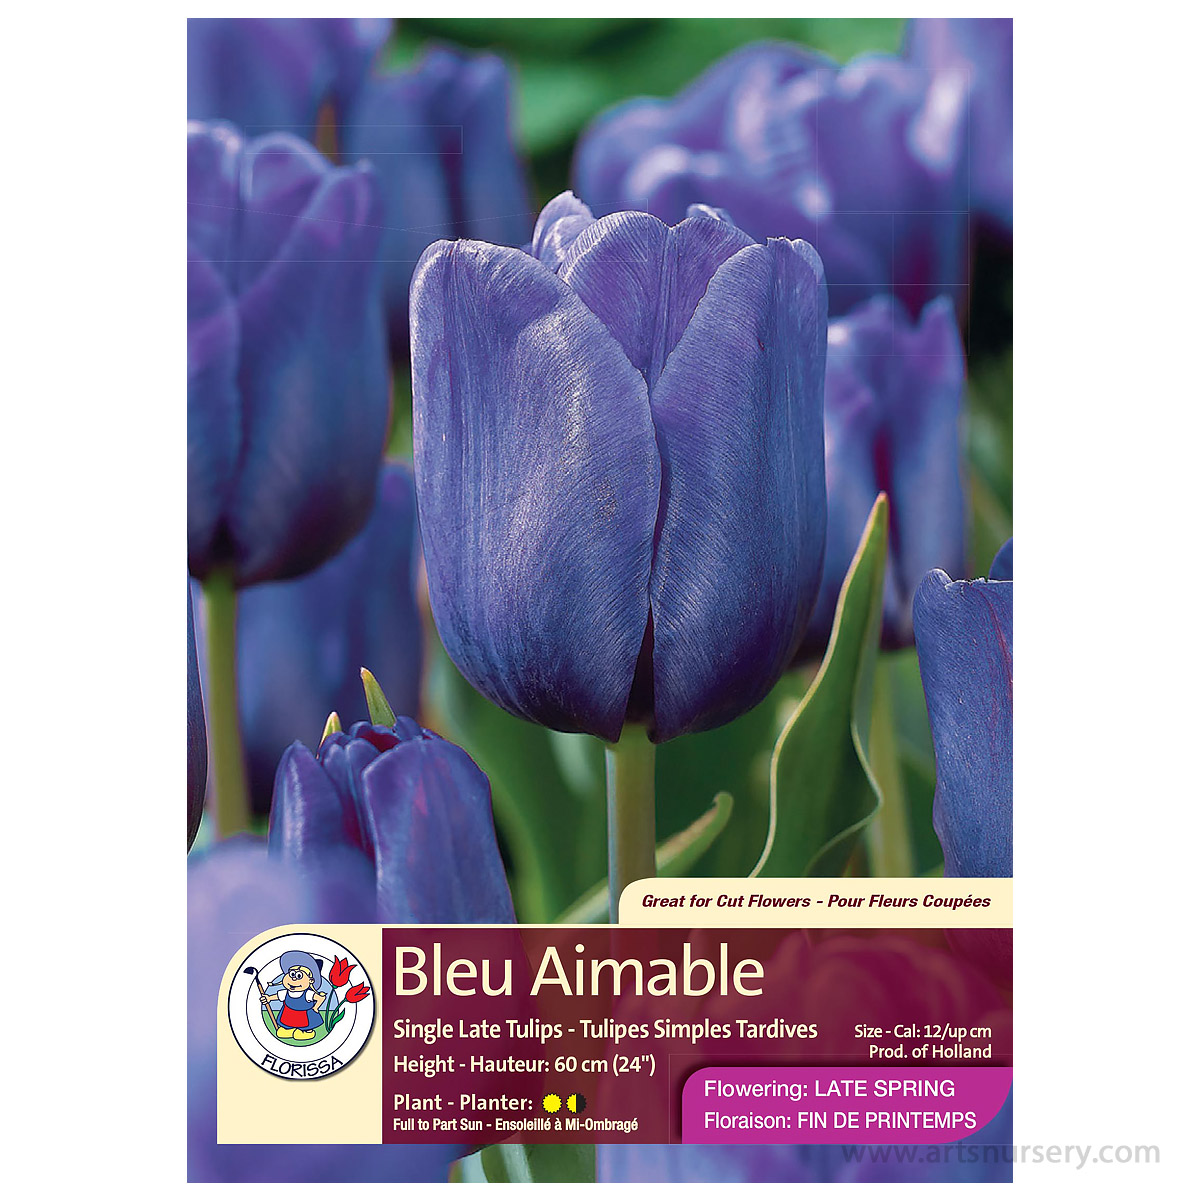 'Bleu Aimable' Tulip Bulbs